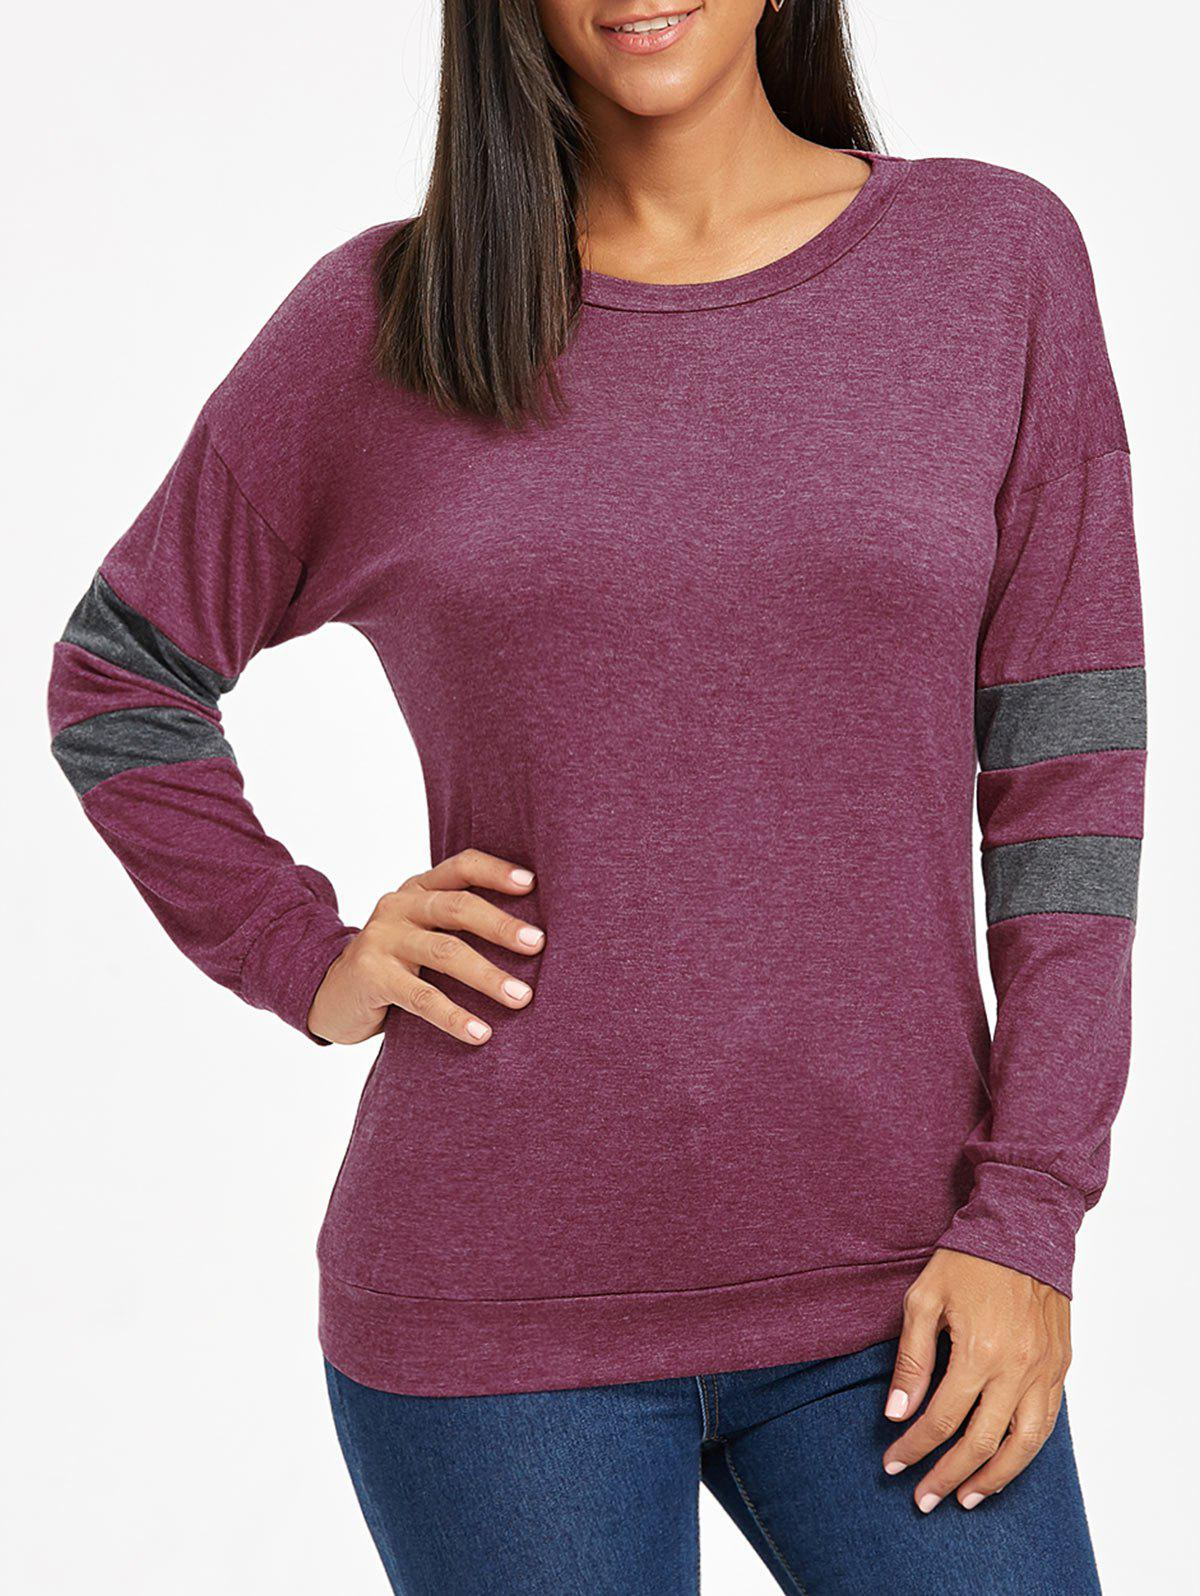 Drop Shoulder Color Block Tunic Sweatshirt - PURPLE XL